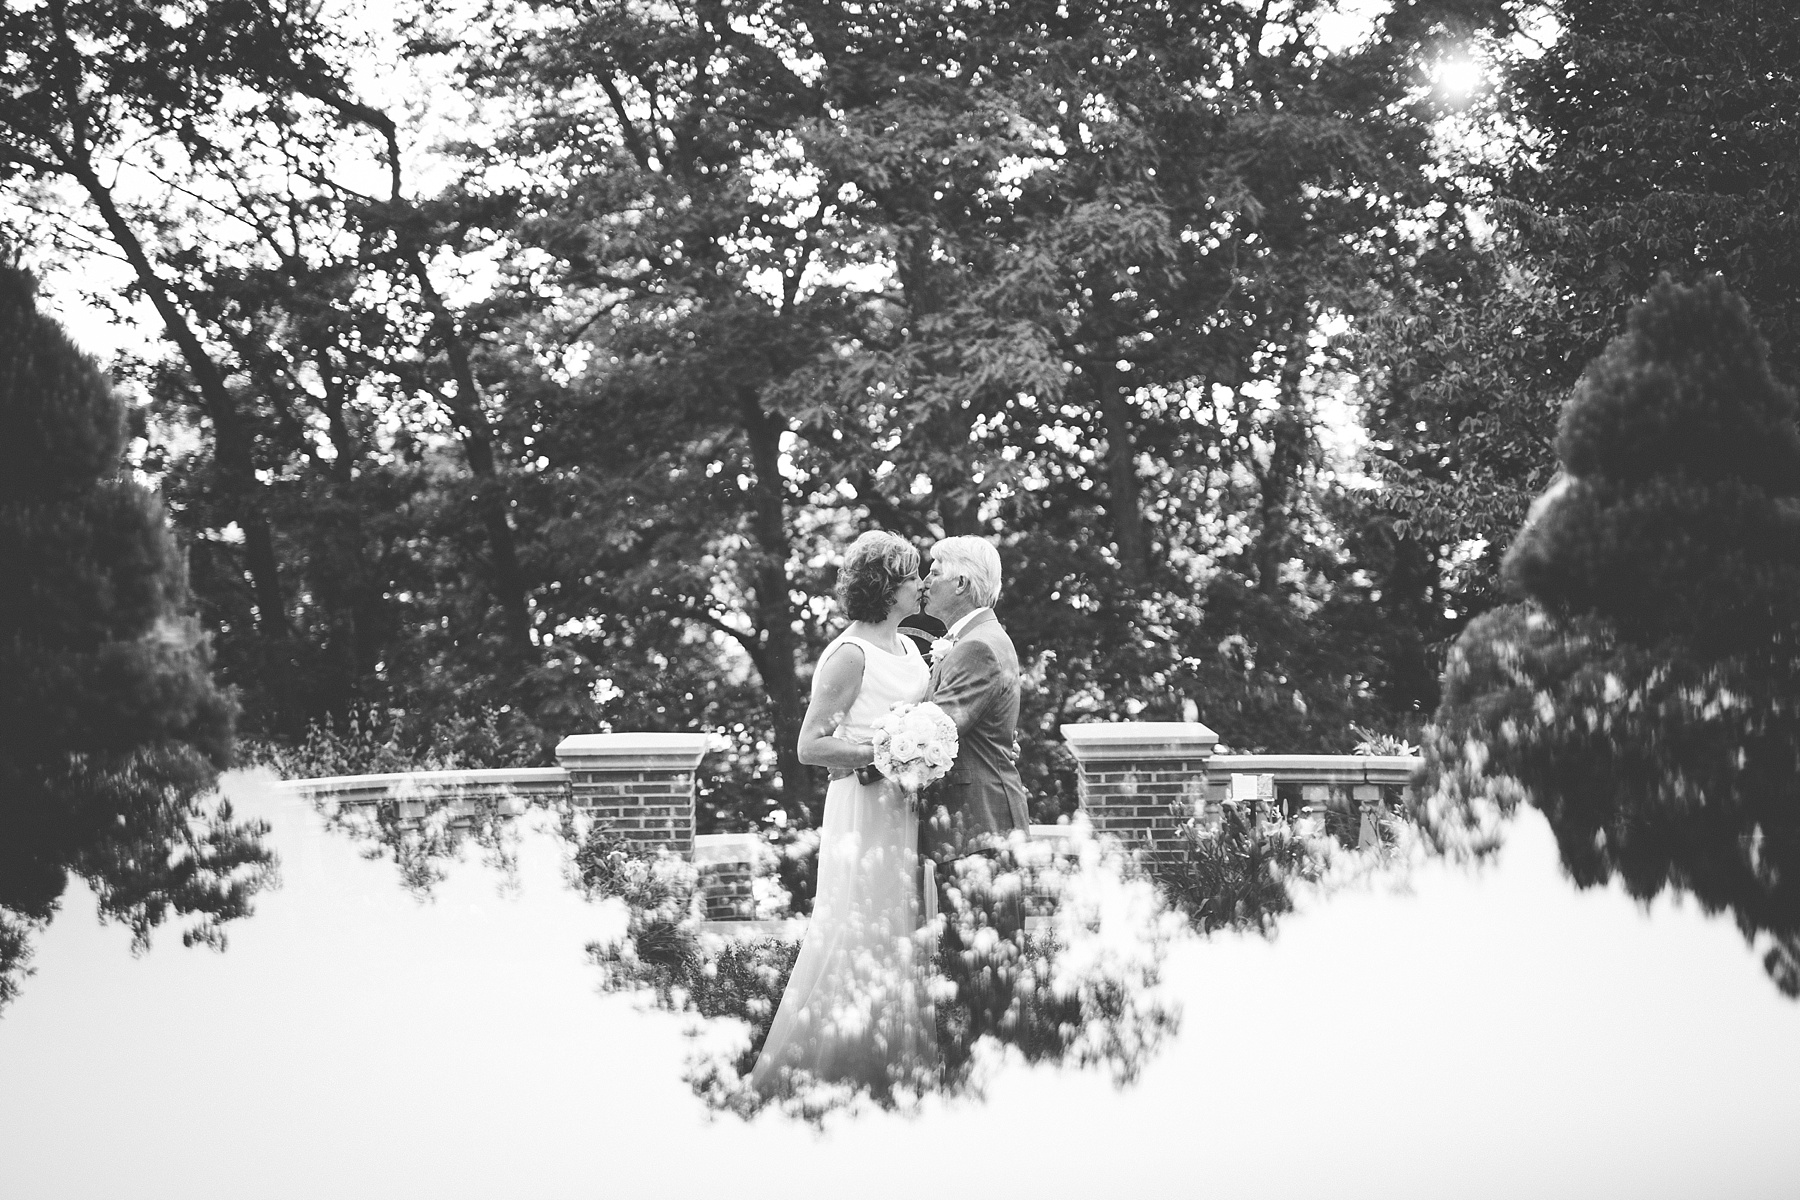 Brandon_Shafer_Photography_Lori_Wes_Gull_Lake_Wedding_0031.jpg